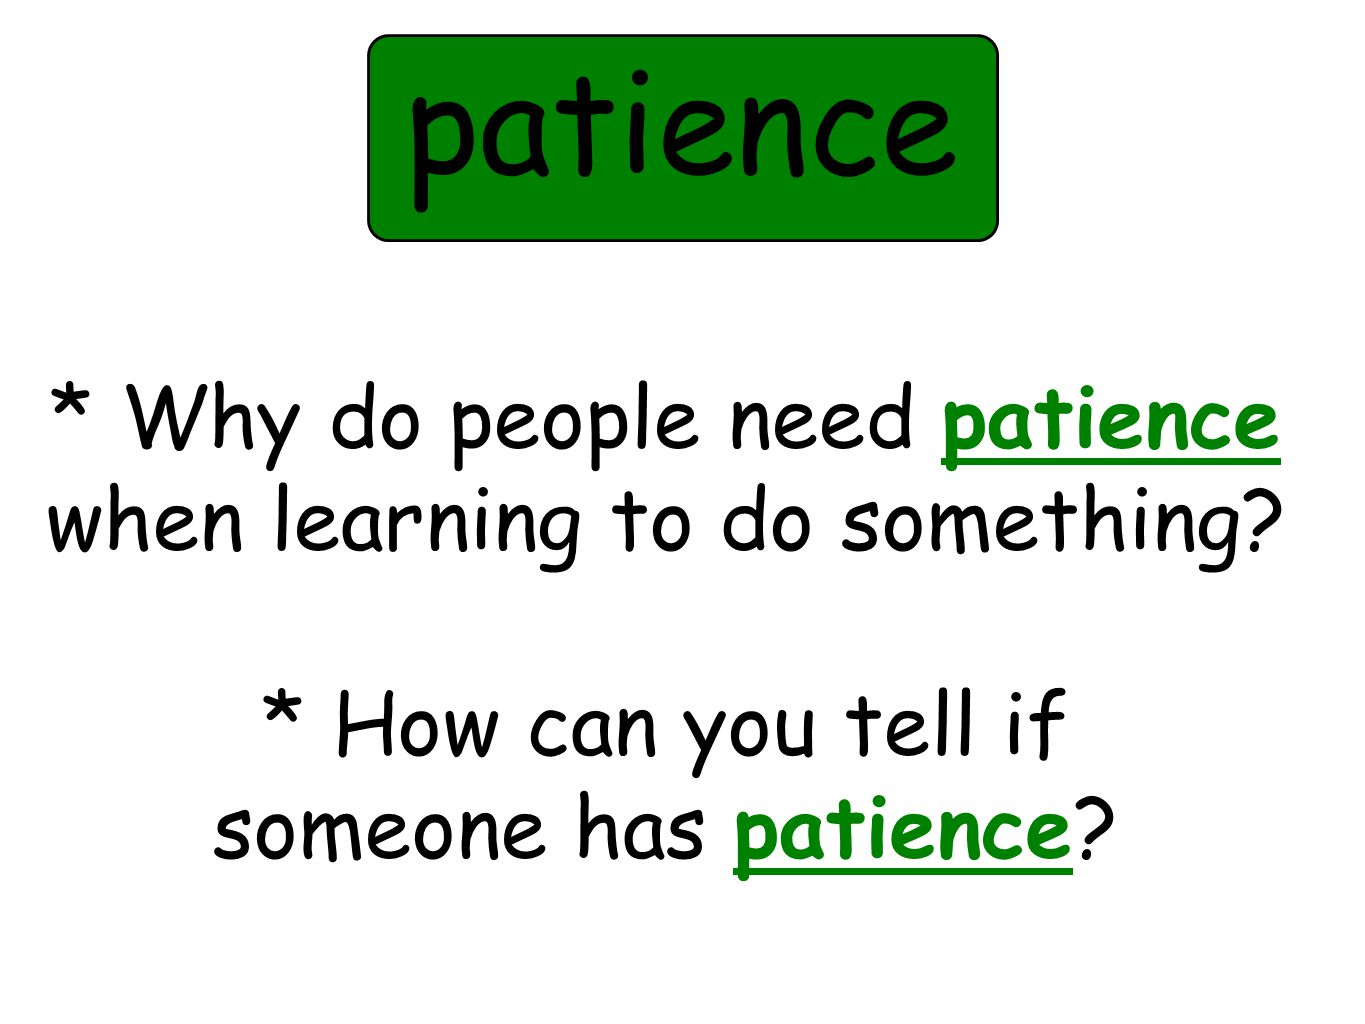 * Why do people need patience when learning to do something.